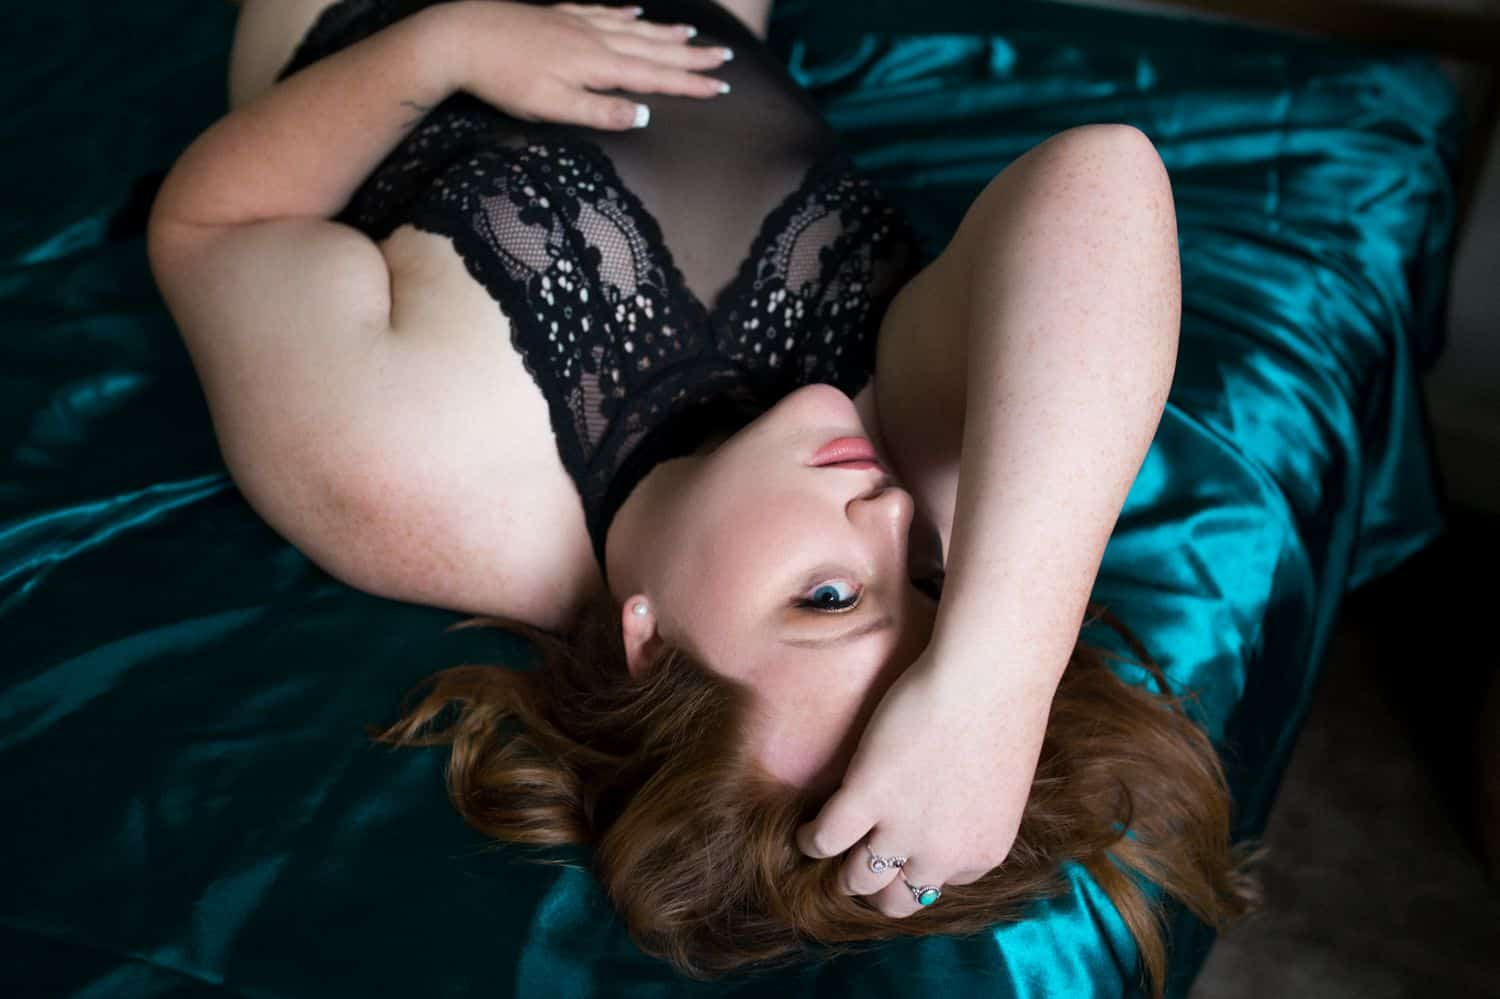 A white individual wearing black lingerie lies on a teal satin bed while being photographed by Kinzie Ferguson, the Empowerment Photographer